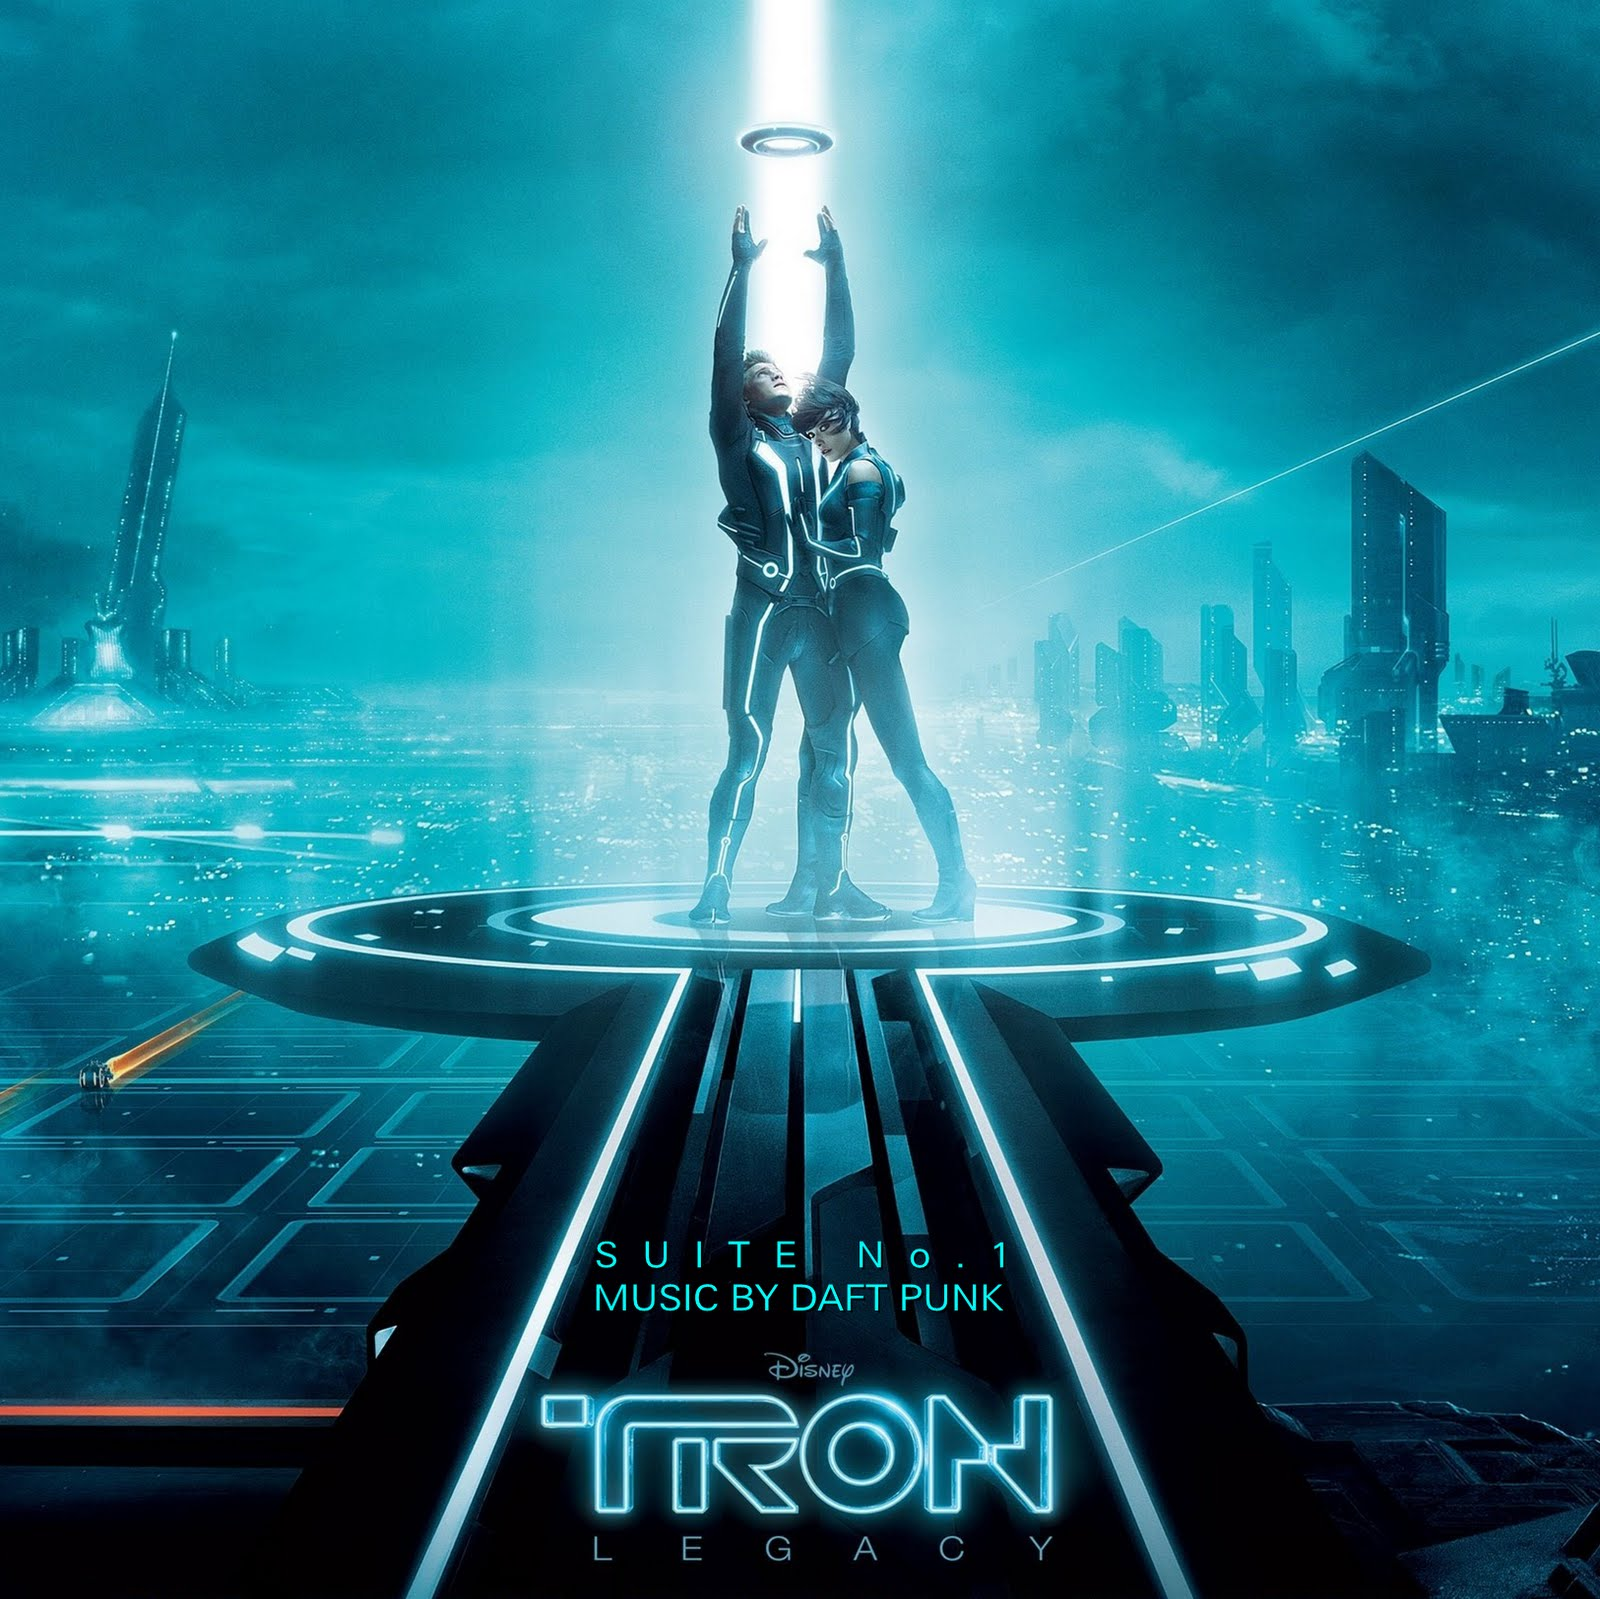 le blog de chief dundee: tron legacy suites no.1 & no.2 - daft punk